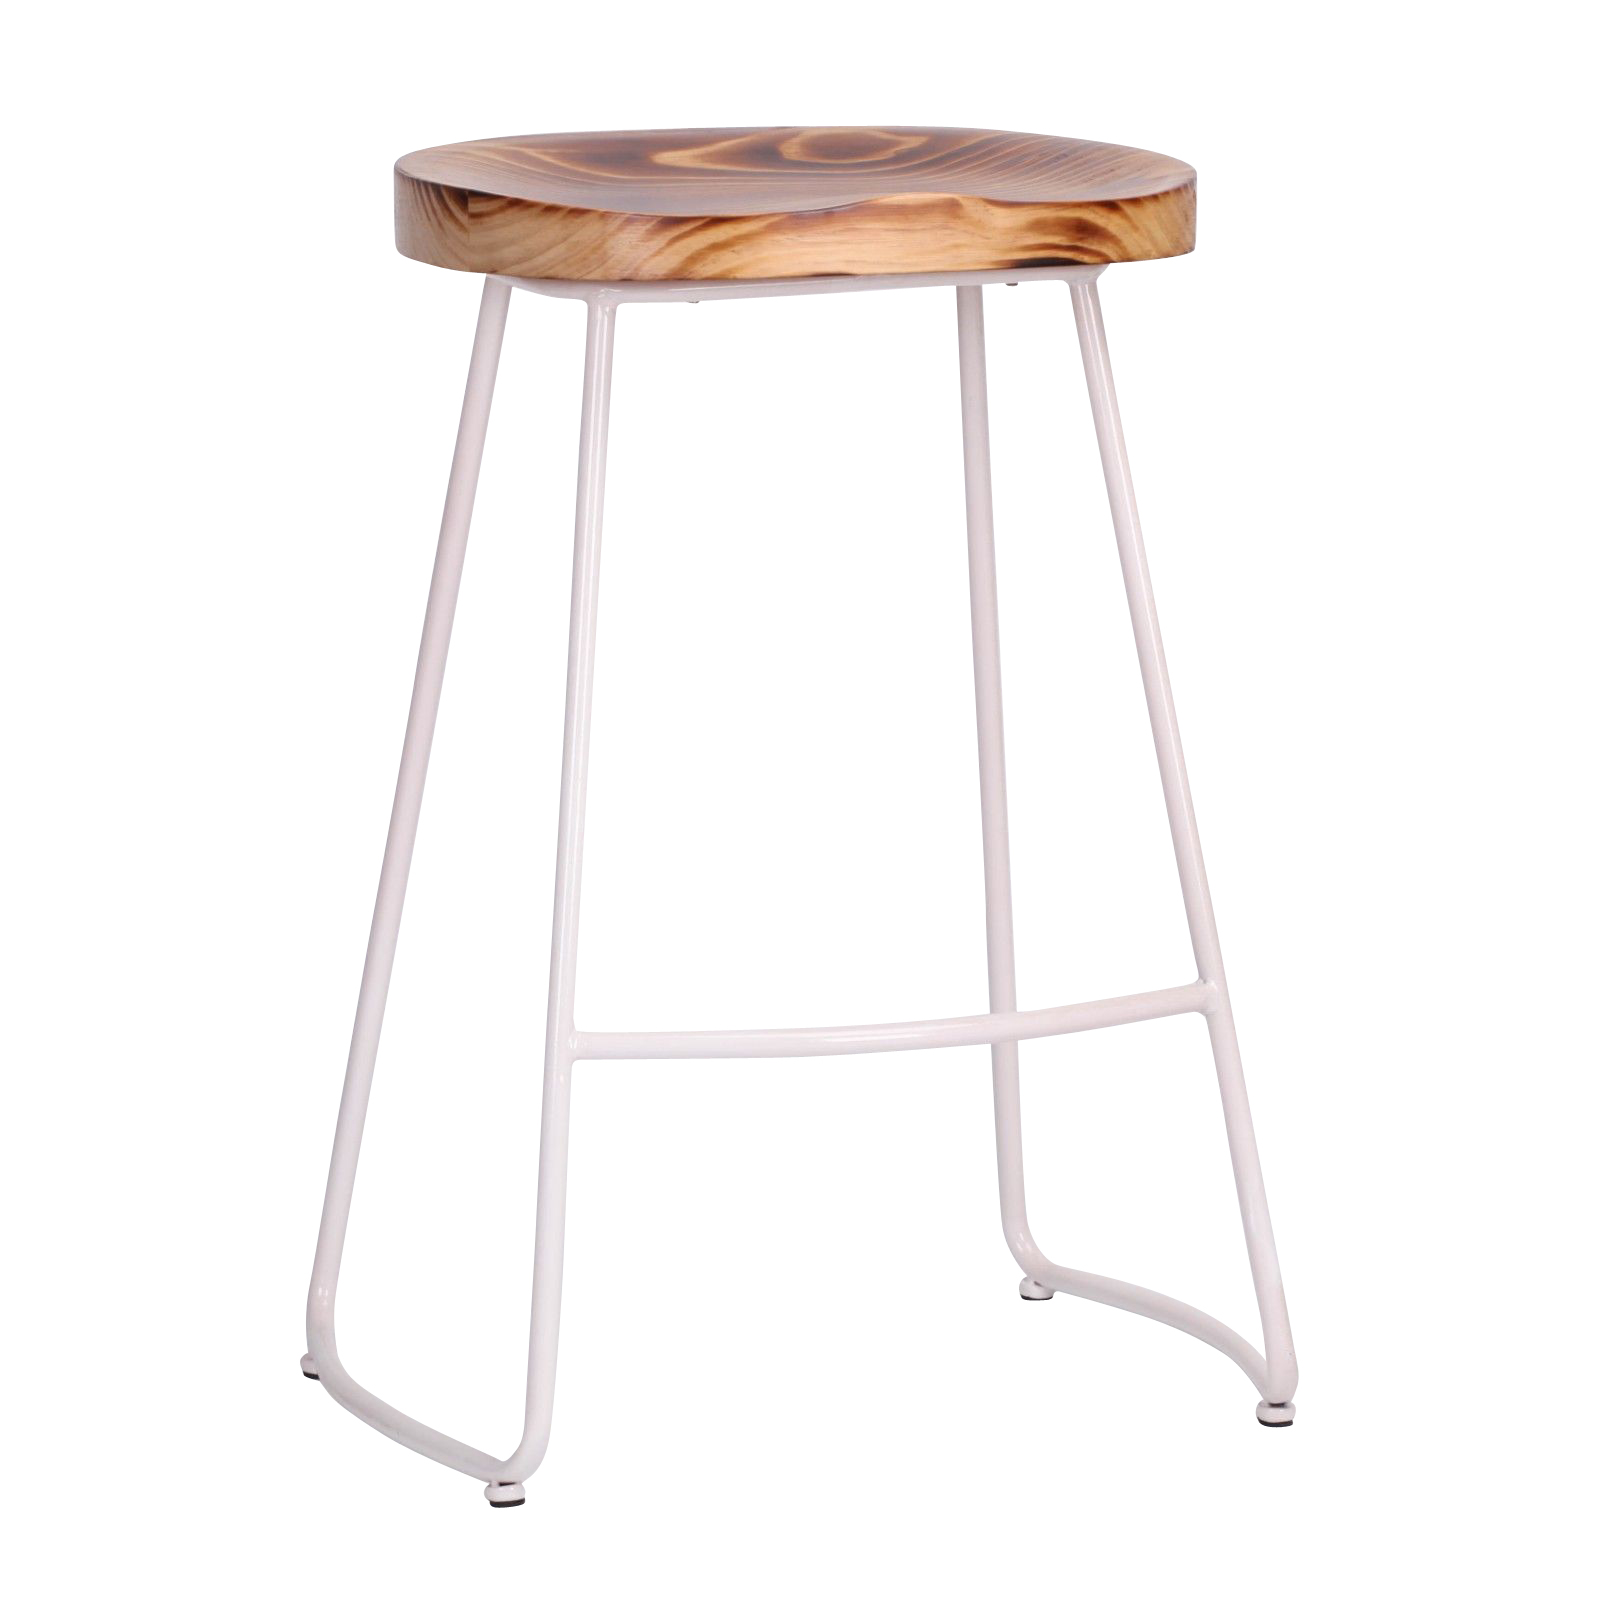 Industrial White Tractor Style Wooden Seat Metal Bar Stool Furniture La Maison Chic Luxury